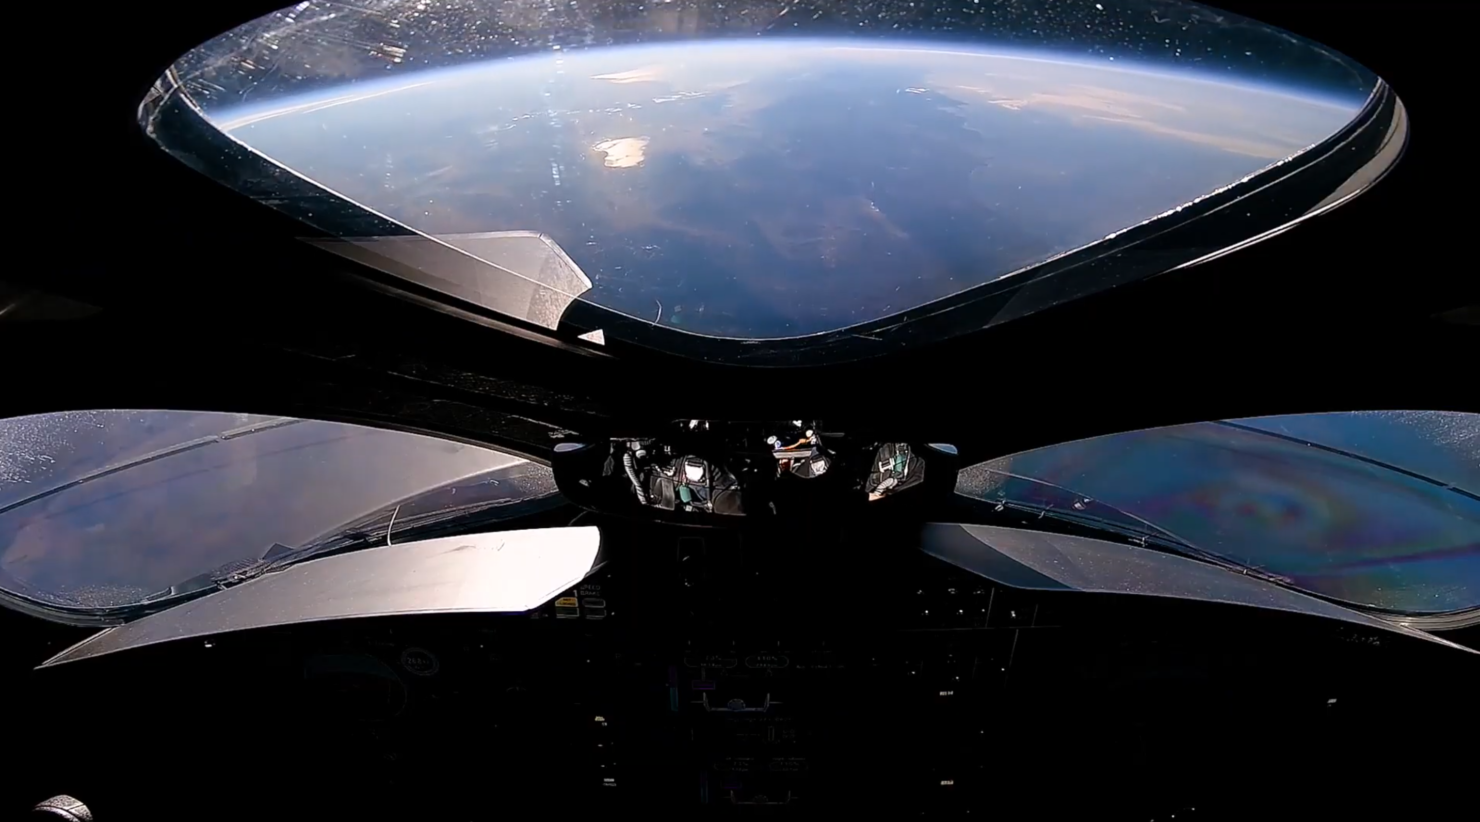 spaceshiptwo-view-inside-cabin